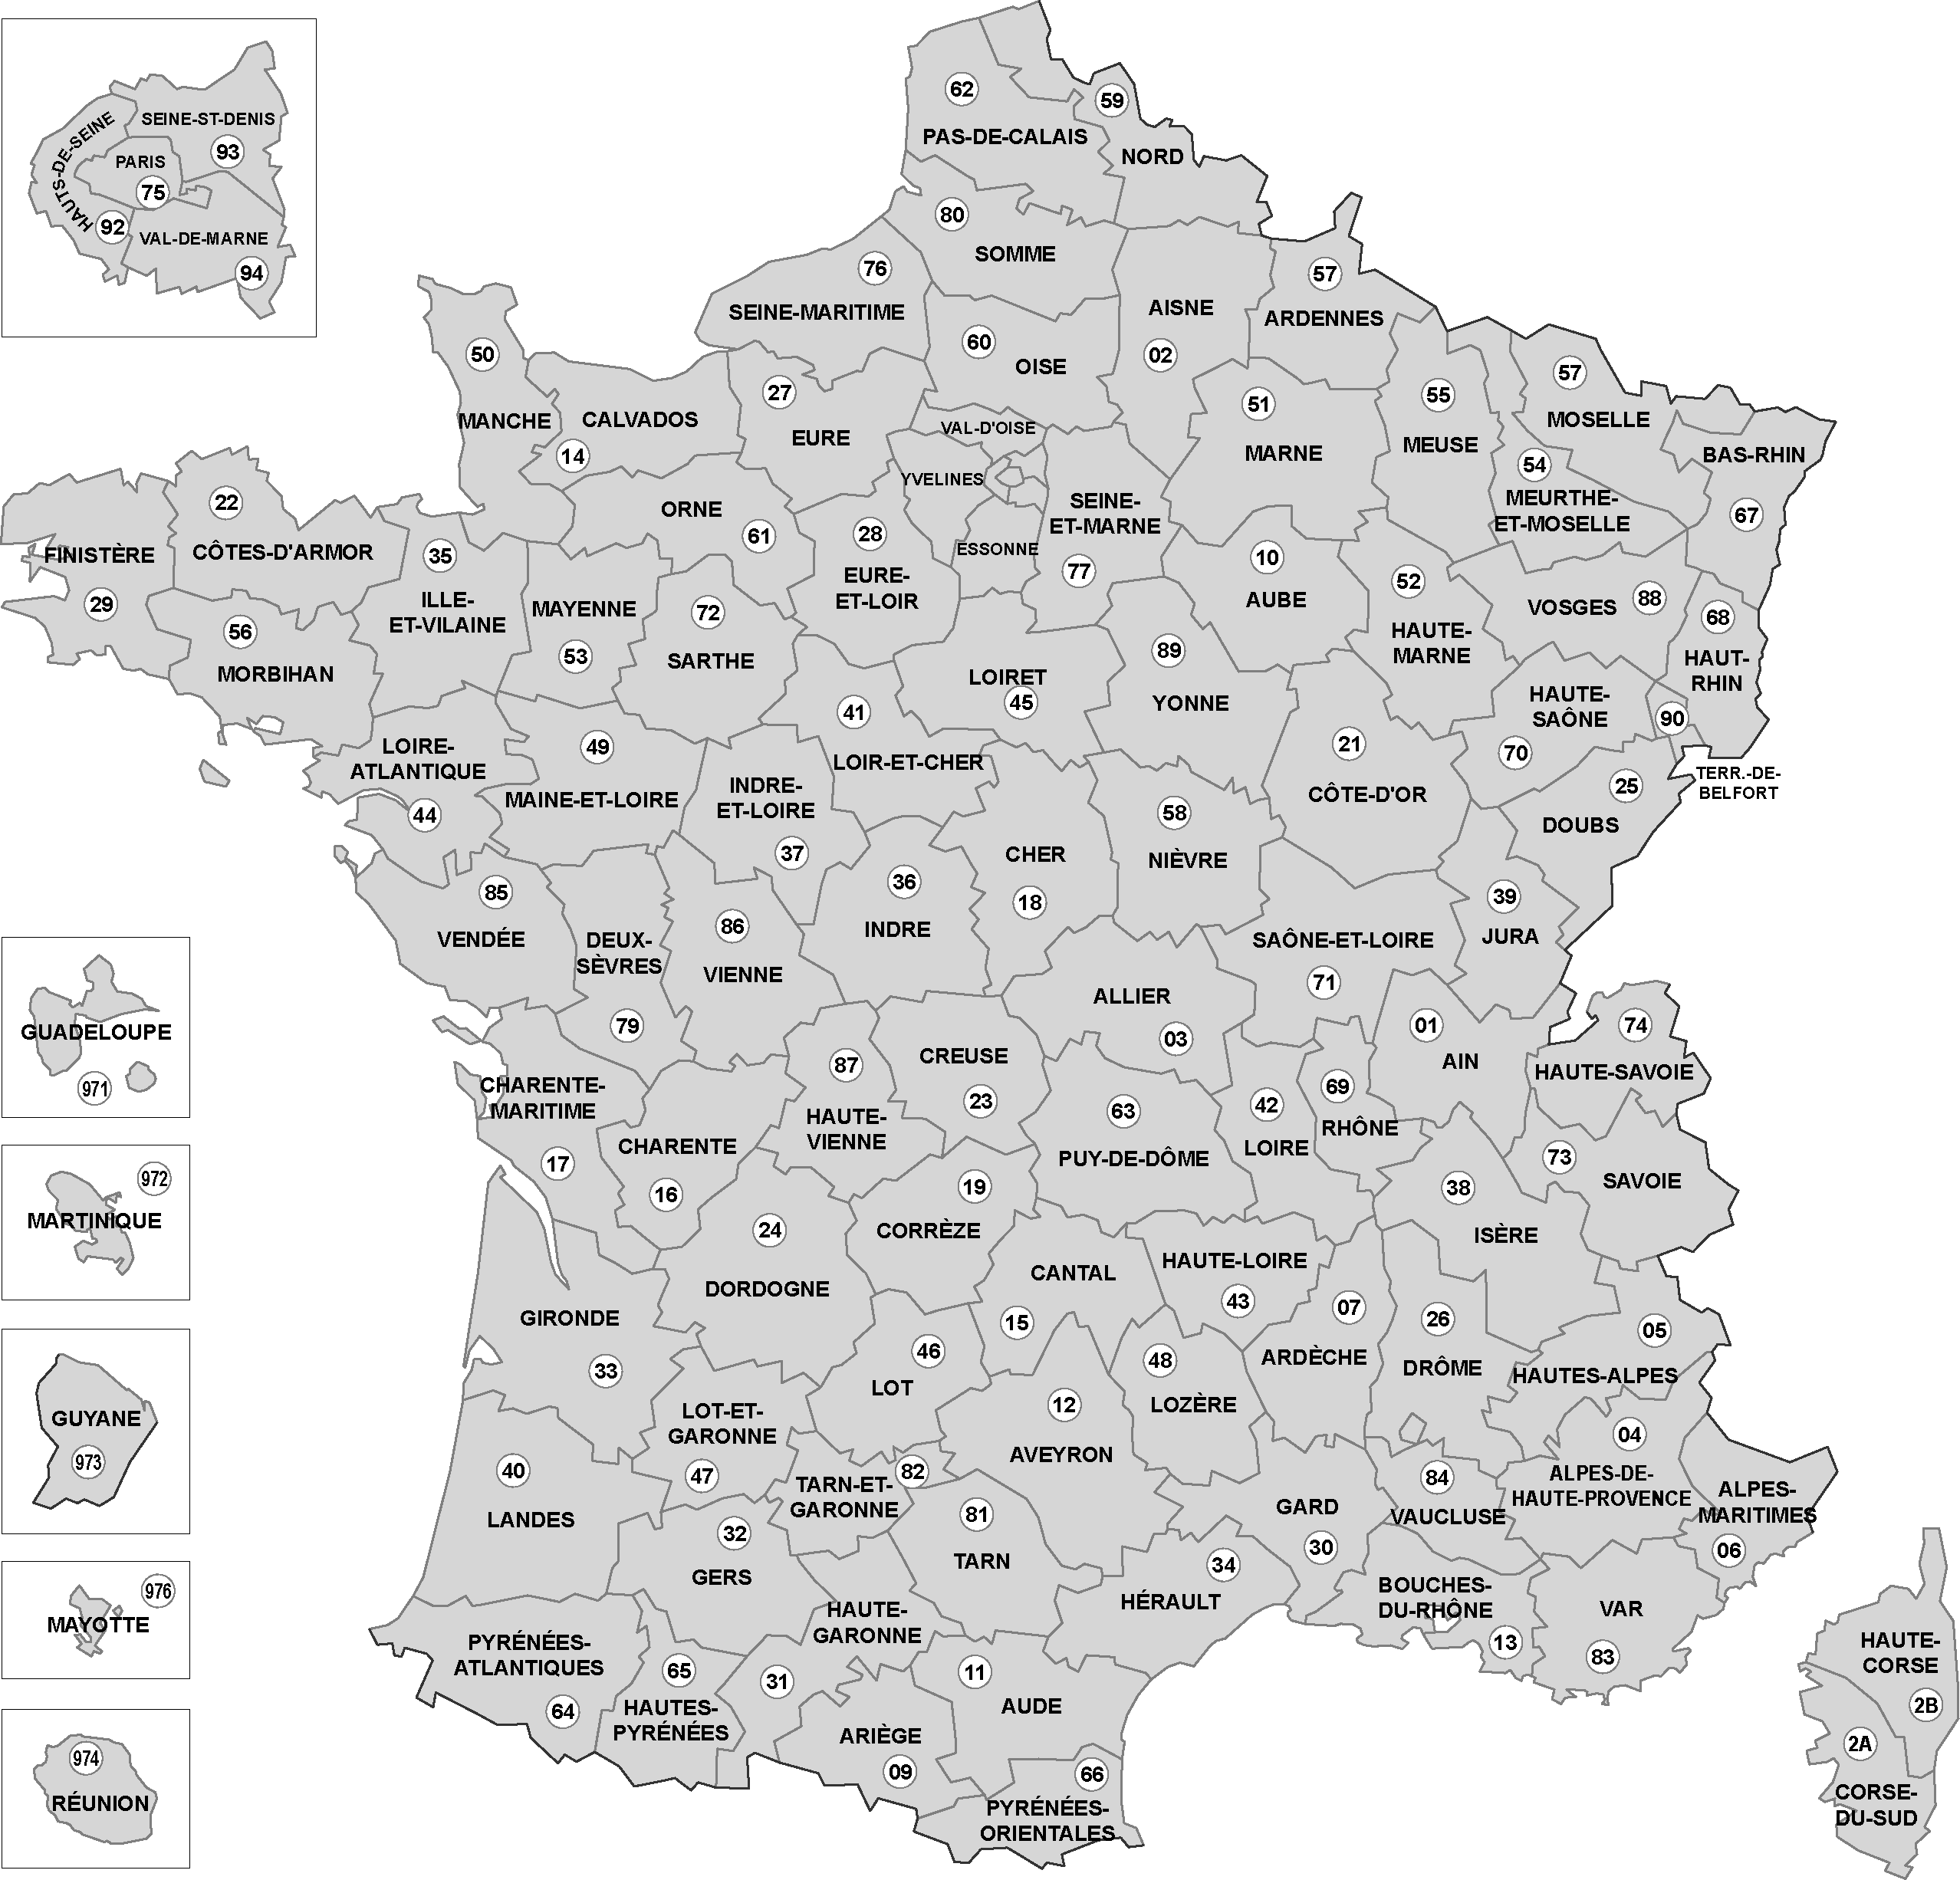 carte-france-avec-departements-et-nom